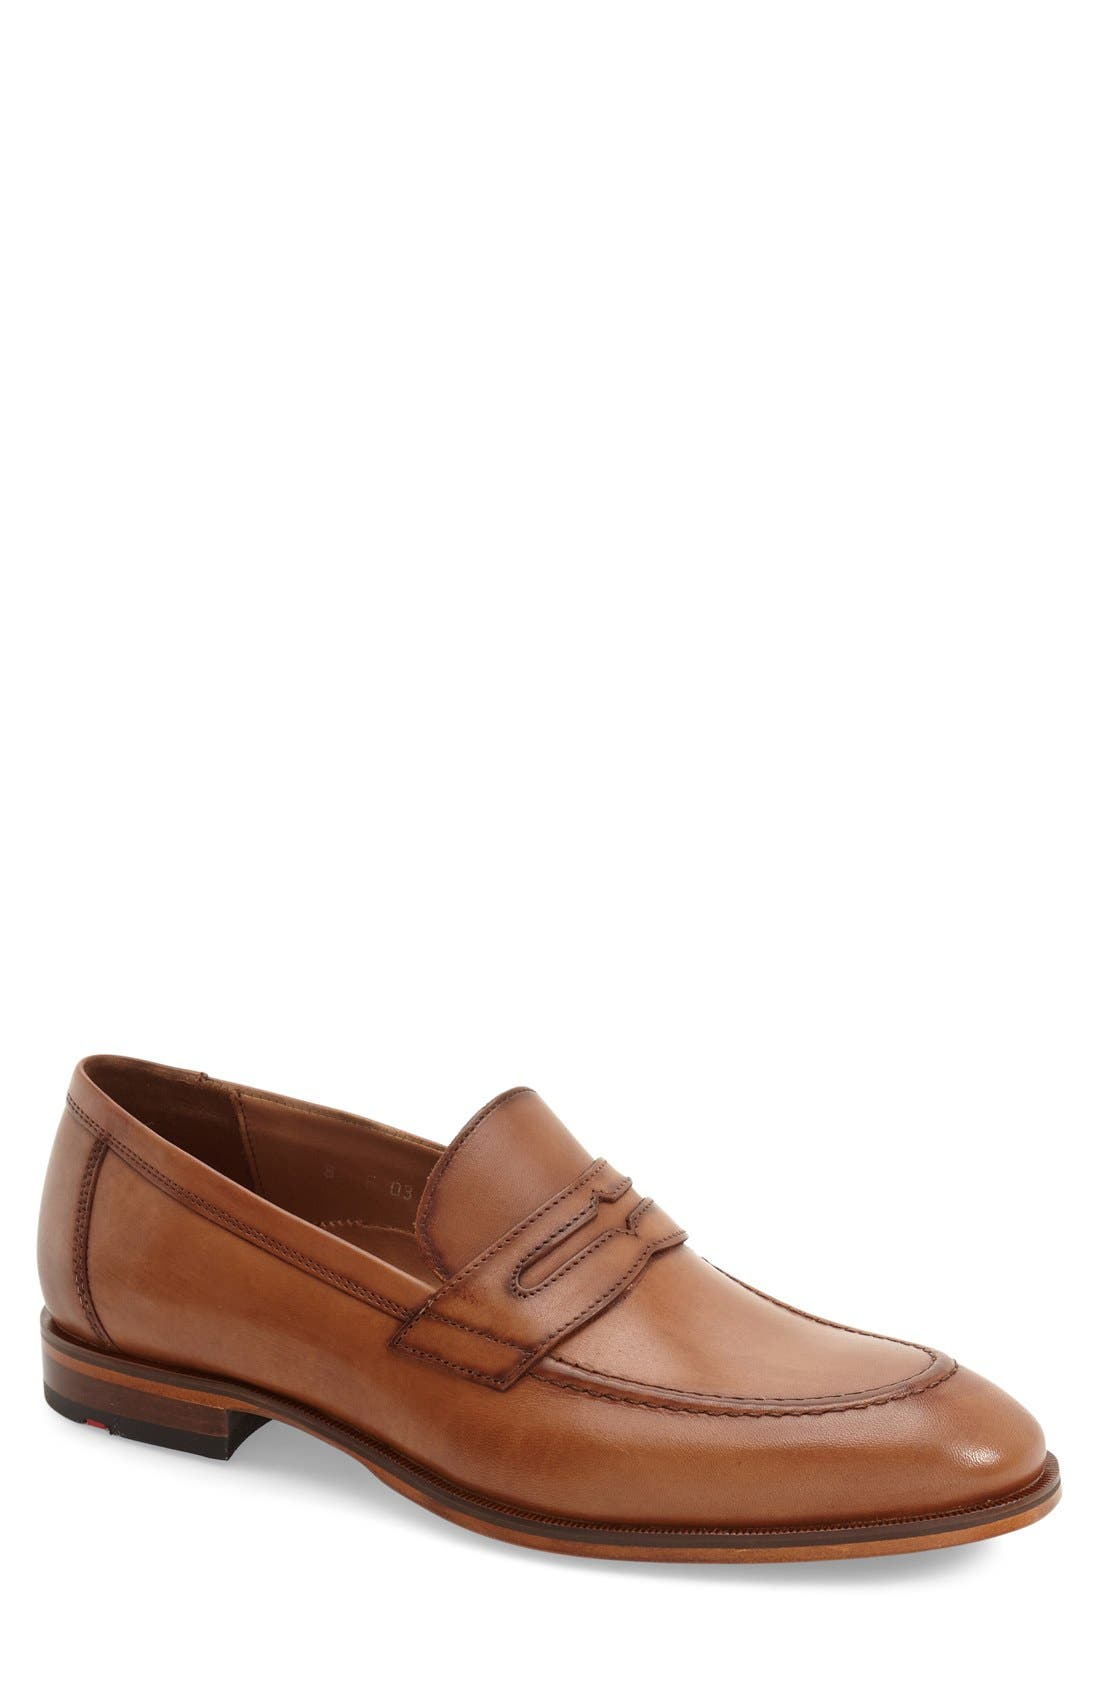 Lloyd Men's 'Pete' Penny Loafer ctRcuT